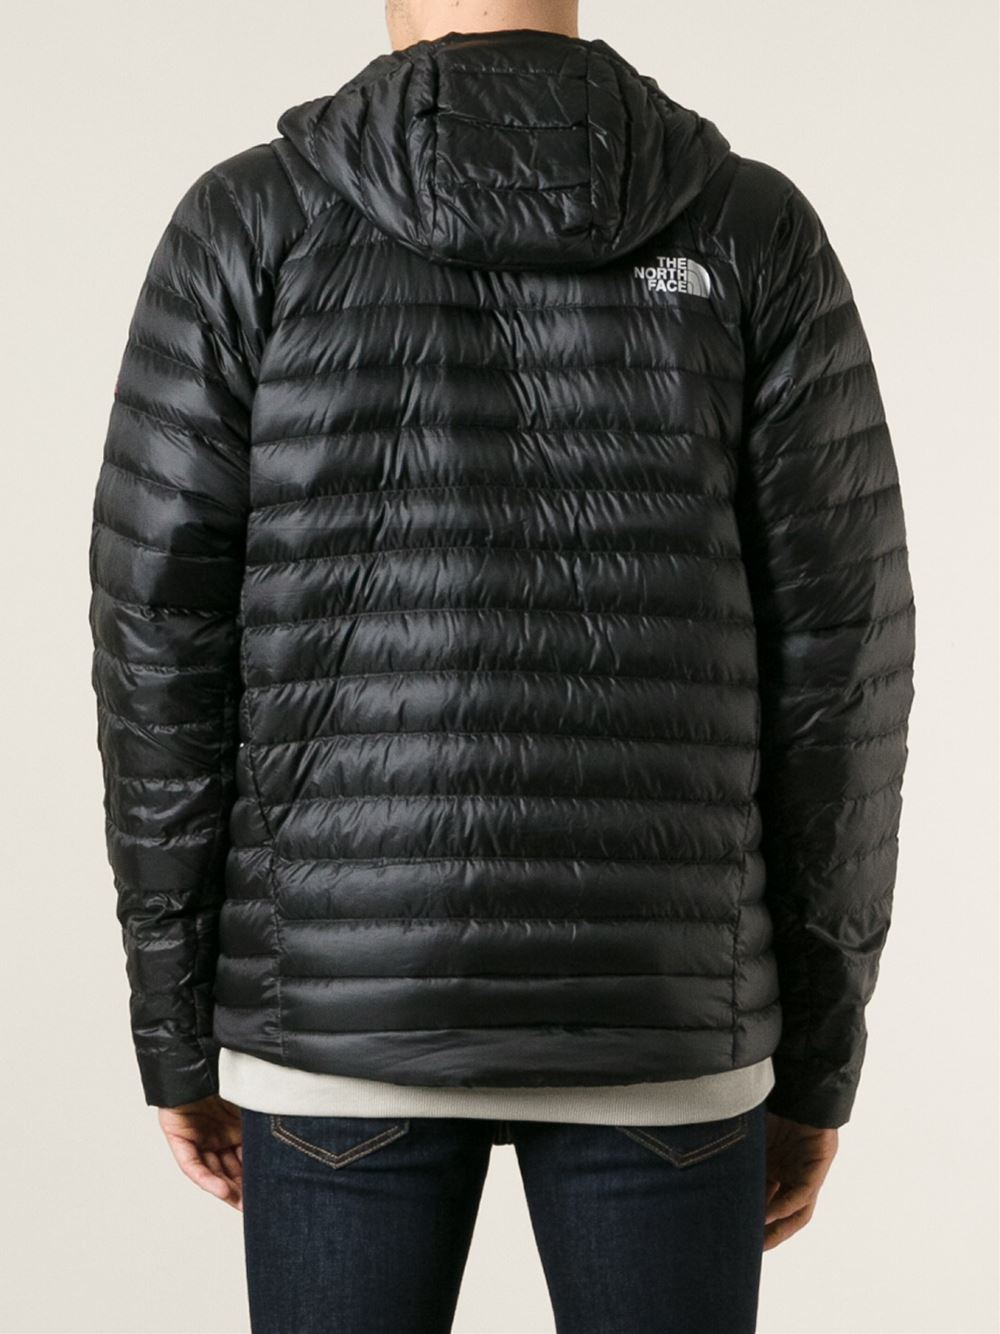 6d6960091379 Lyst - The North Face Quilted Jacket in Black for Men